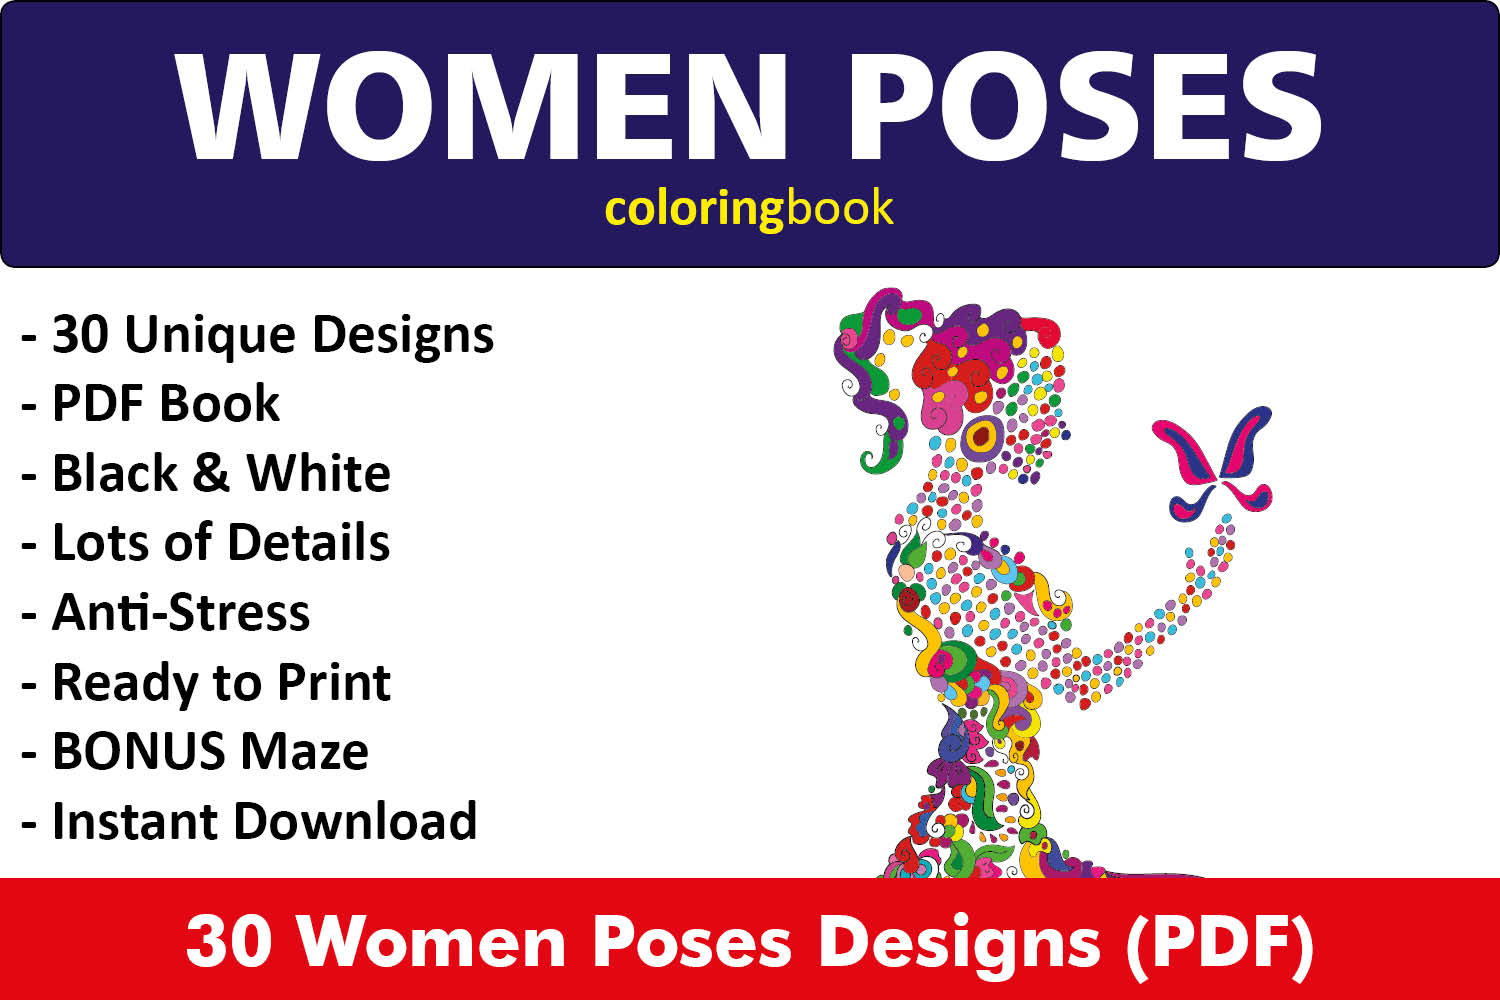 Women Poses Coloring Book - 30 Unique Illustrations example image 1